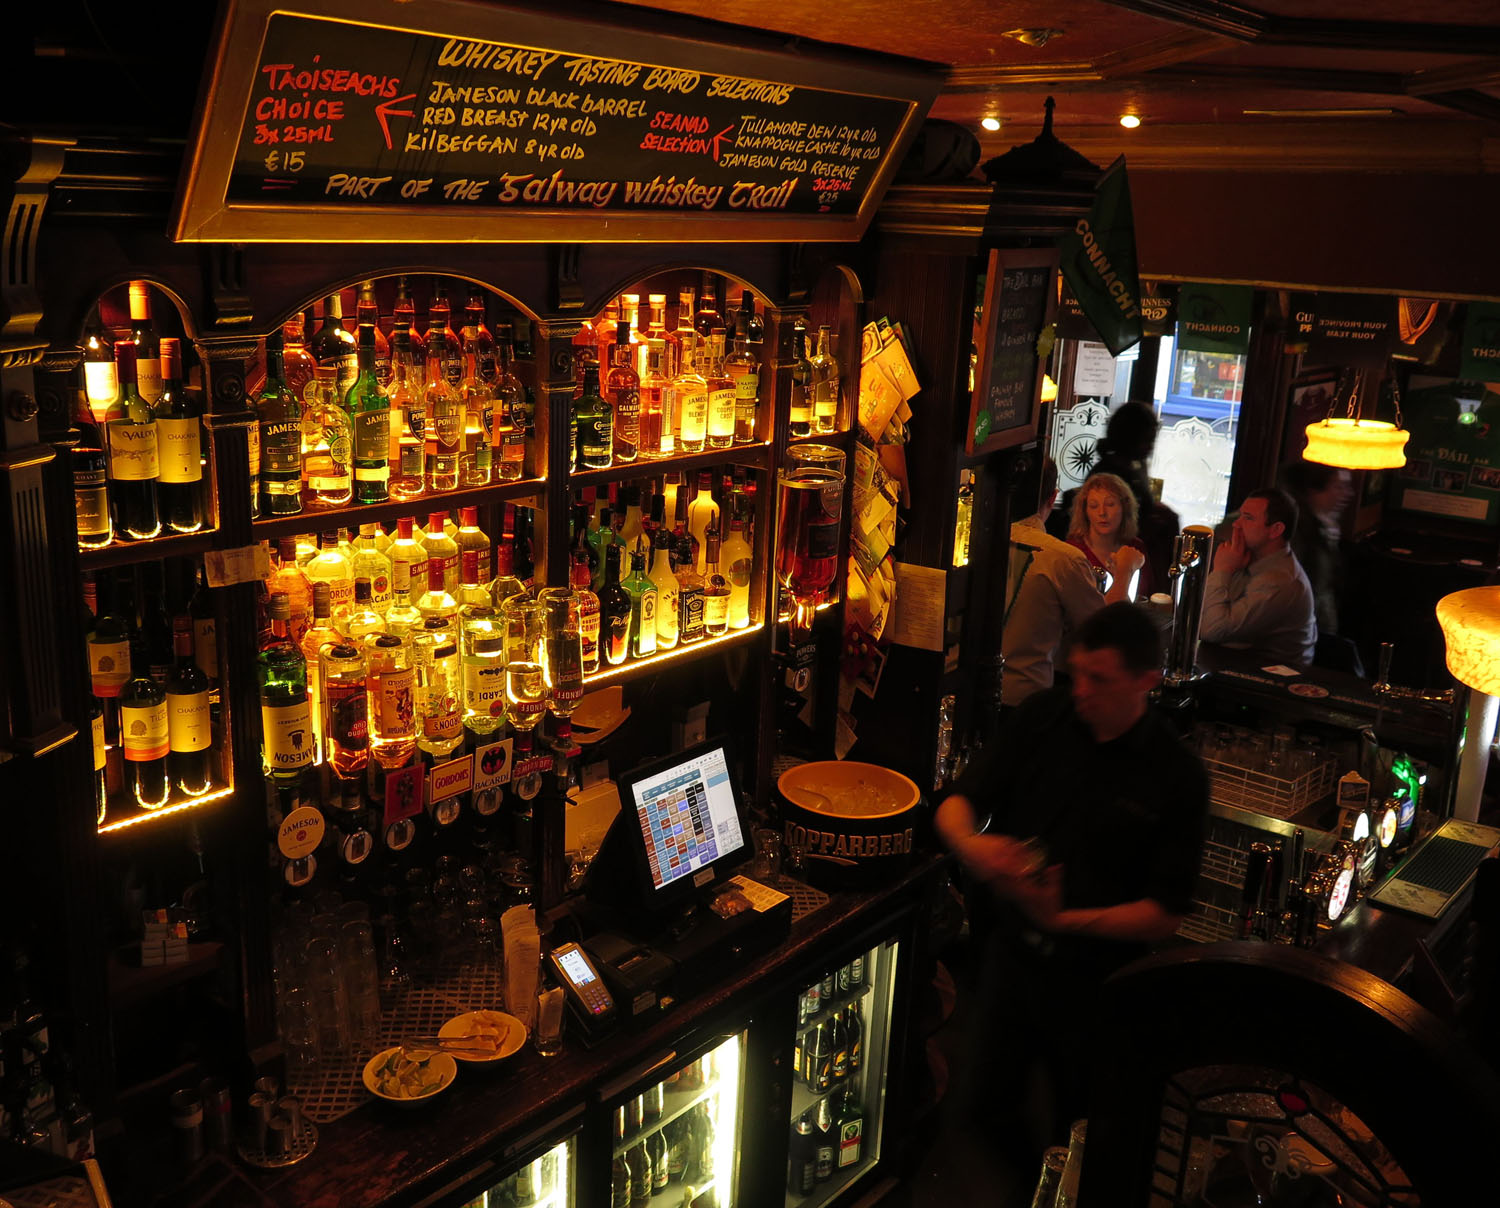 Ireland-Sights-And-Scenery-Galway-Pub